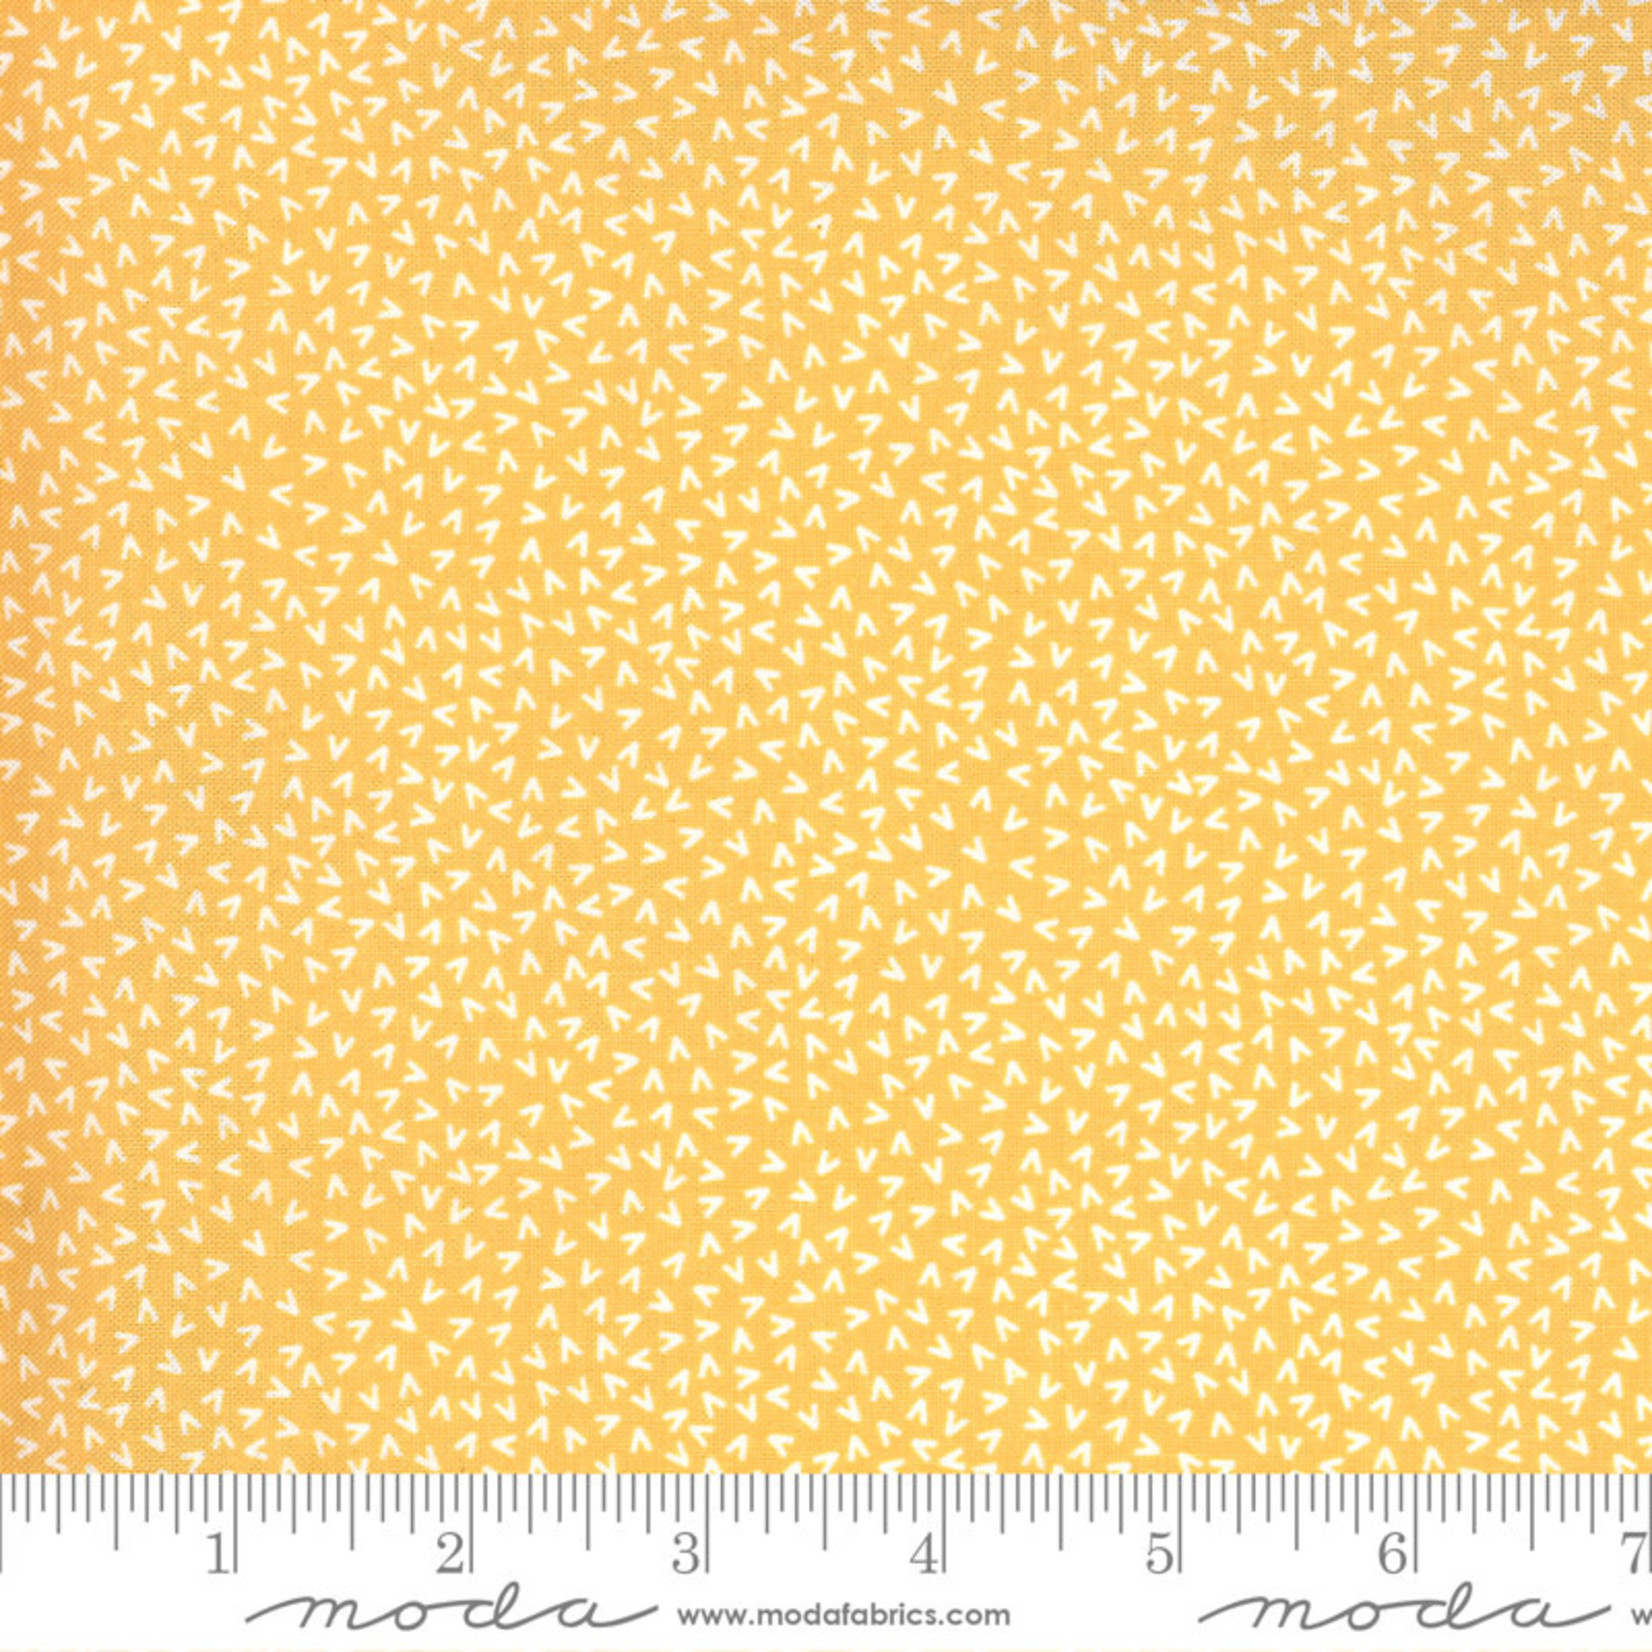 Sweetwater Spring Chicken, Tracks, Yellow 55525-14 $0.20 per cm or $20/m